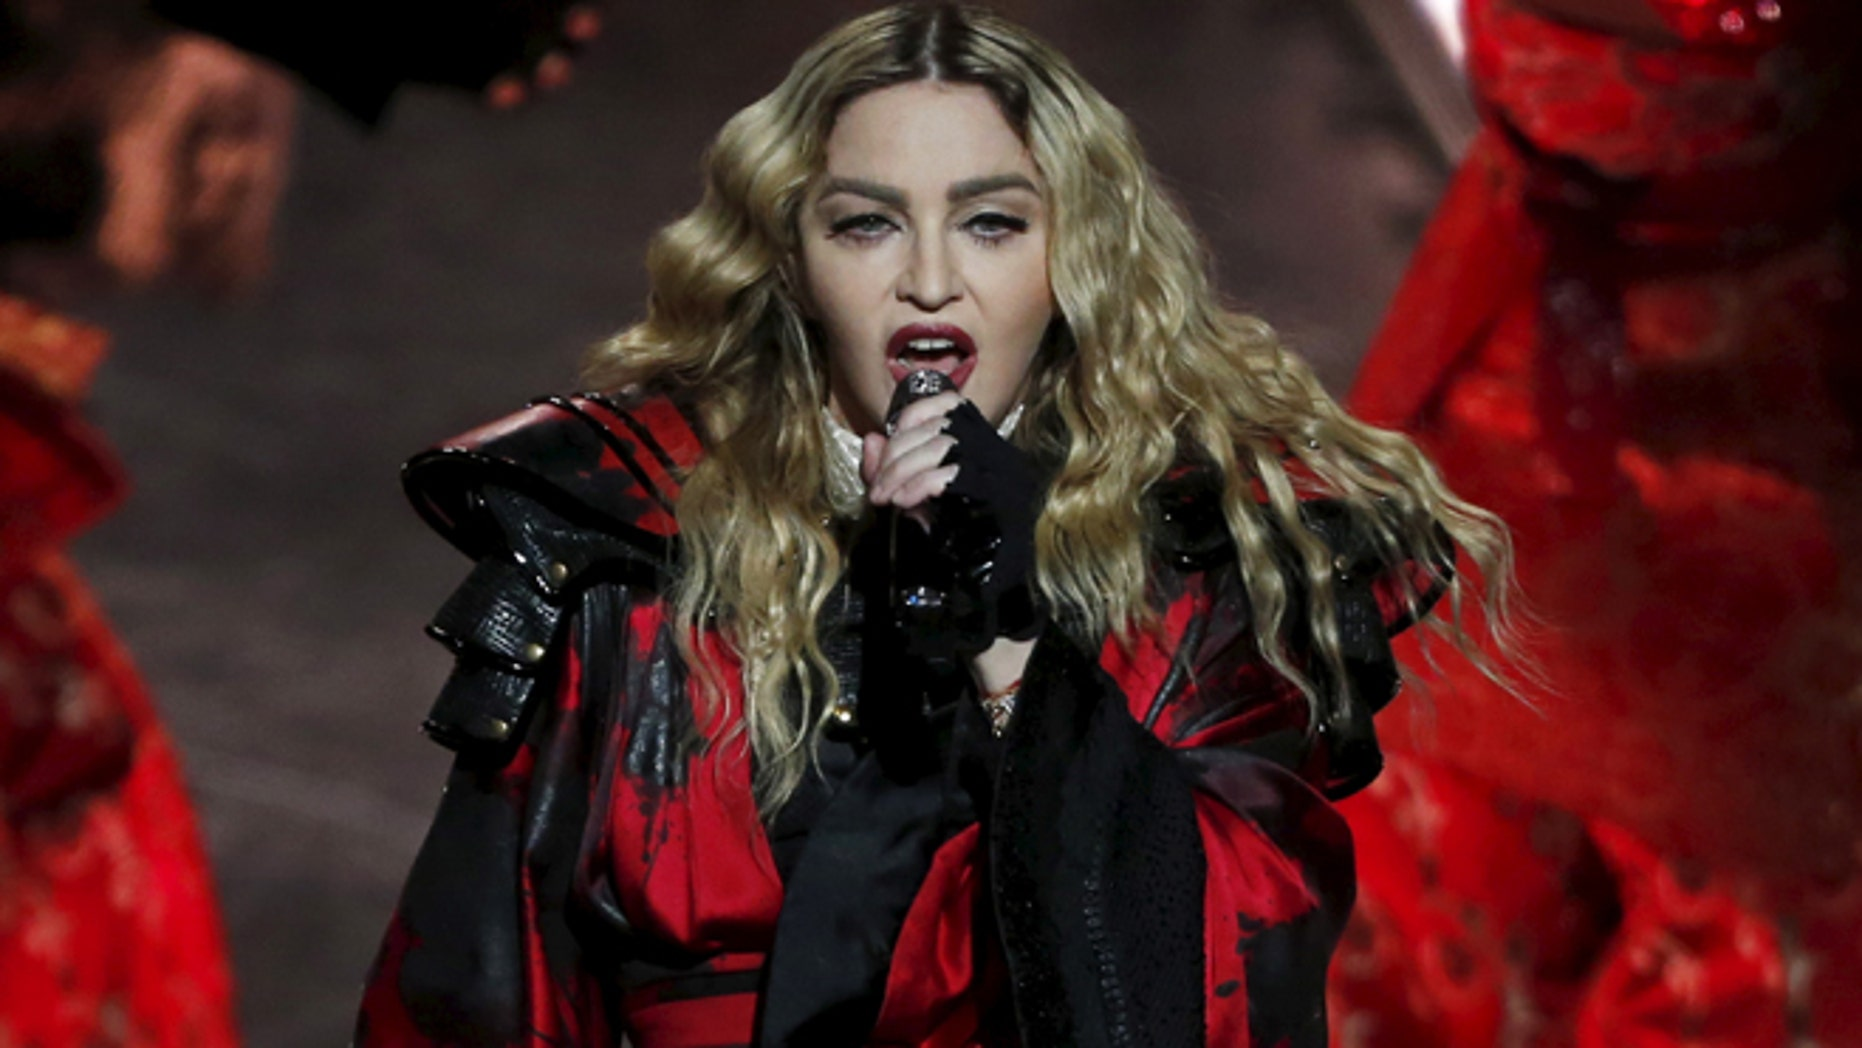 February 20, 2016. Madonna performs during her Rebel Heart Tour concert  in Macau, China.